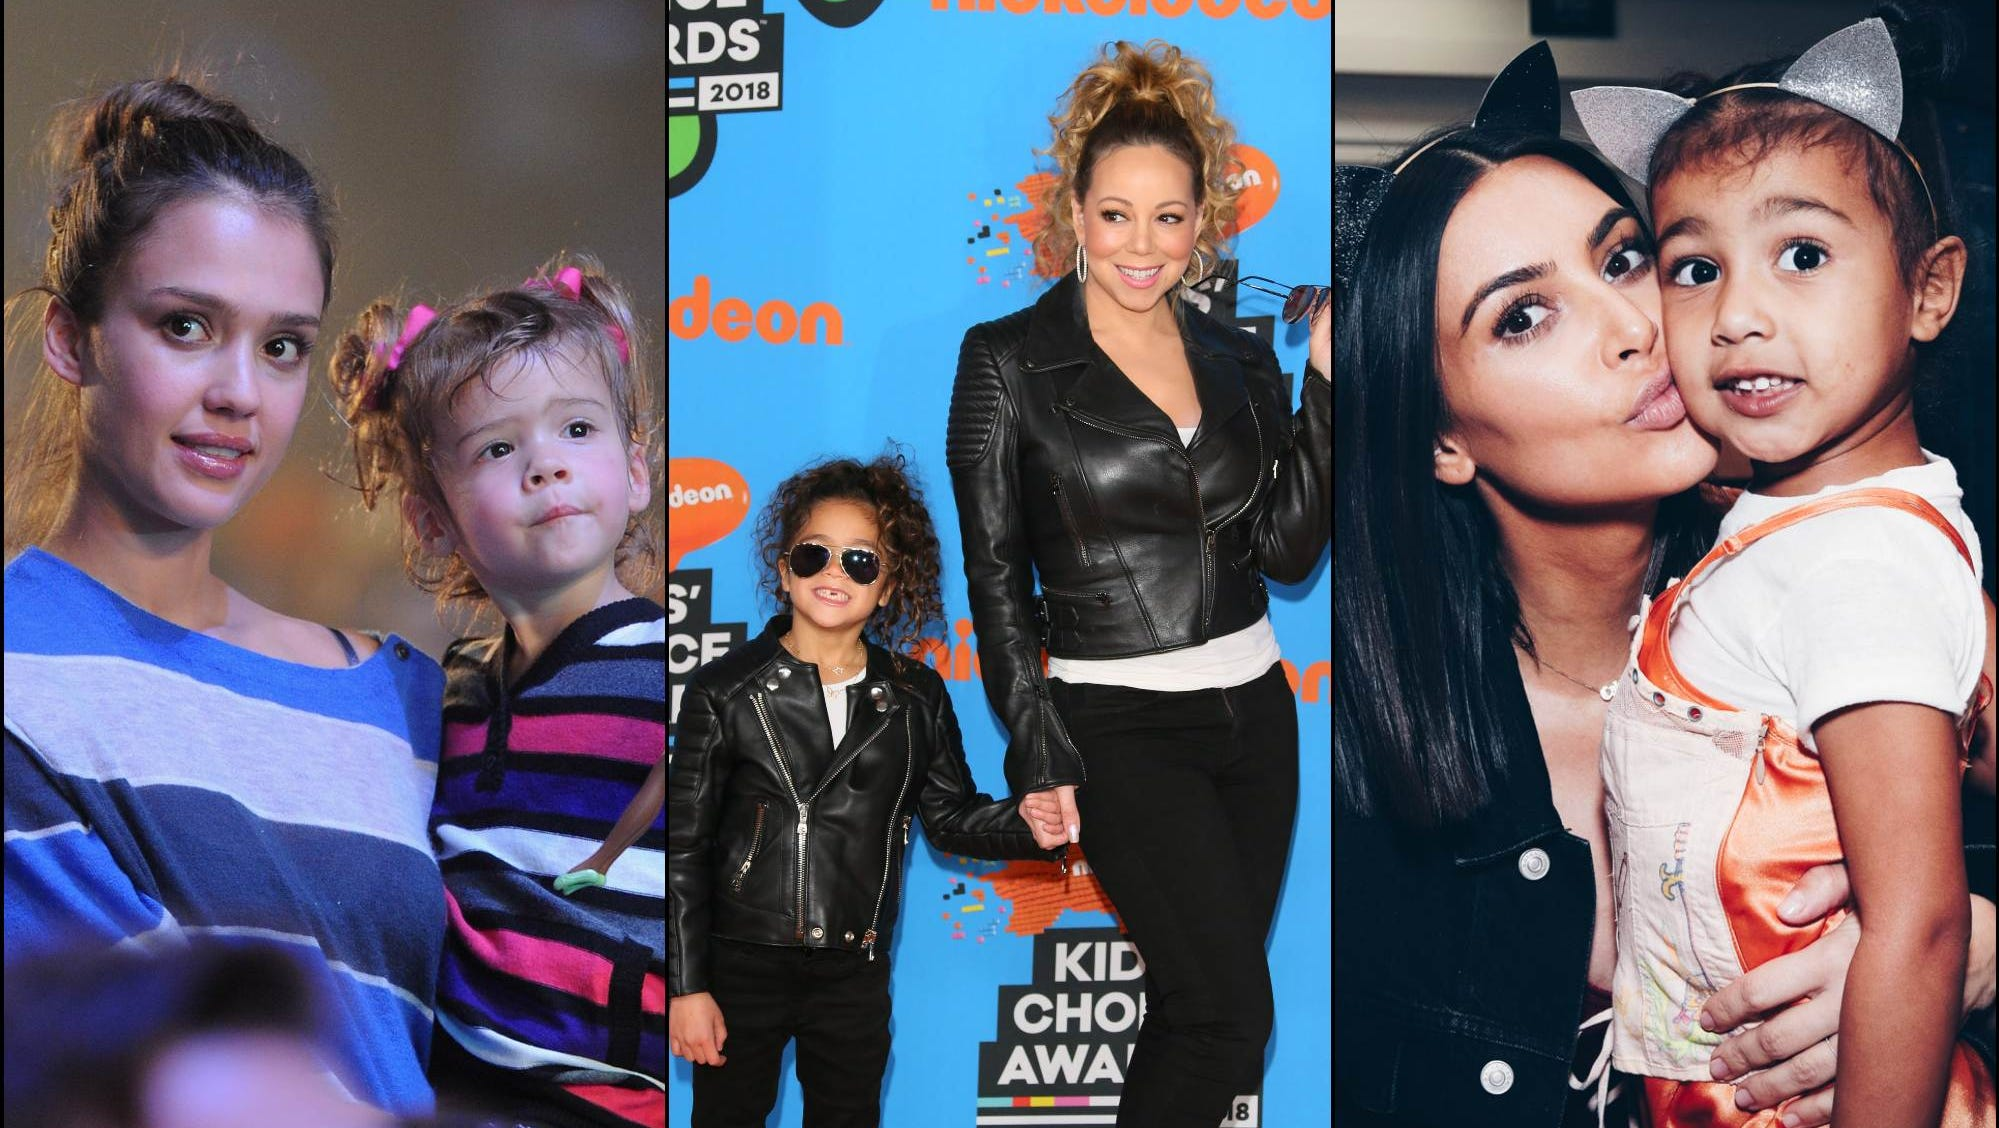 Actress Jessica Alba and daughter Honor, singer Mariah Carey and daughter Monroe Cannon, and reality star Kim Kardashian with daughter North West.